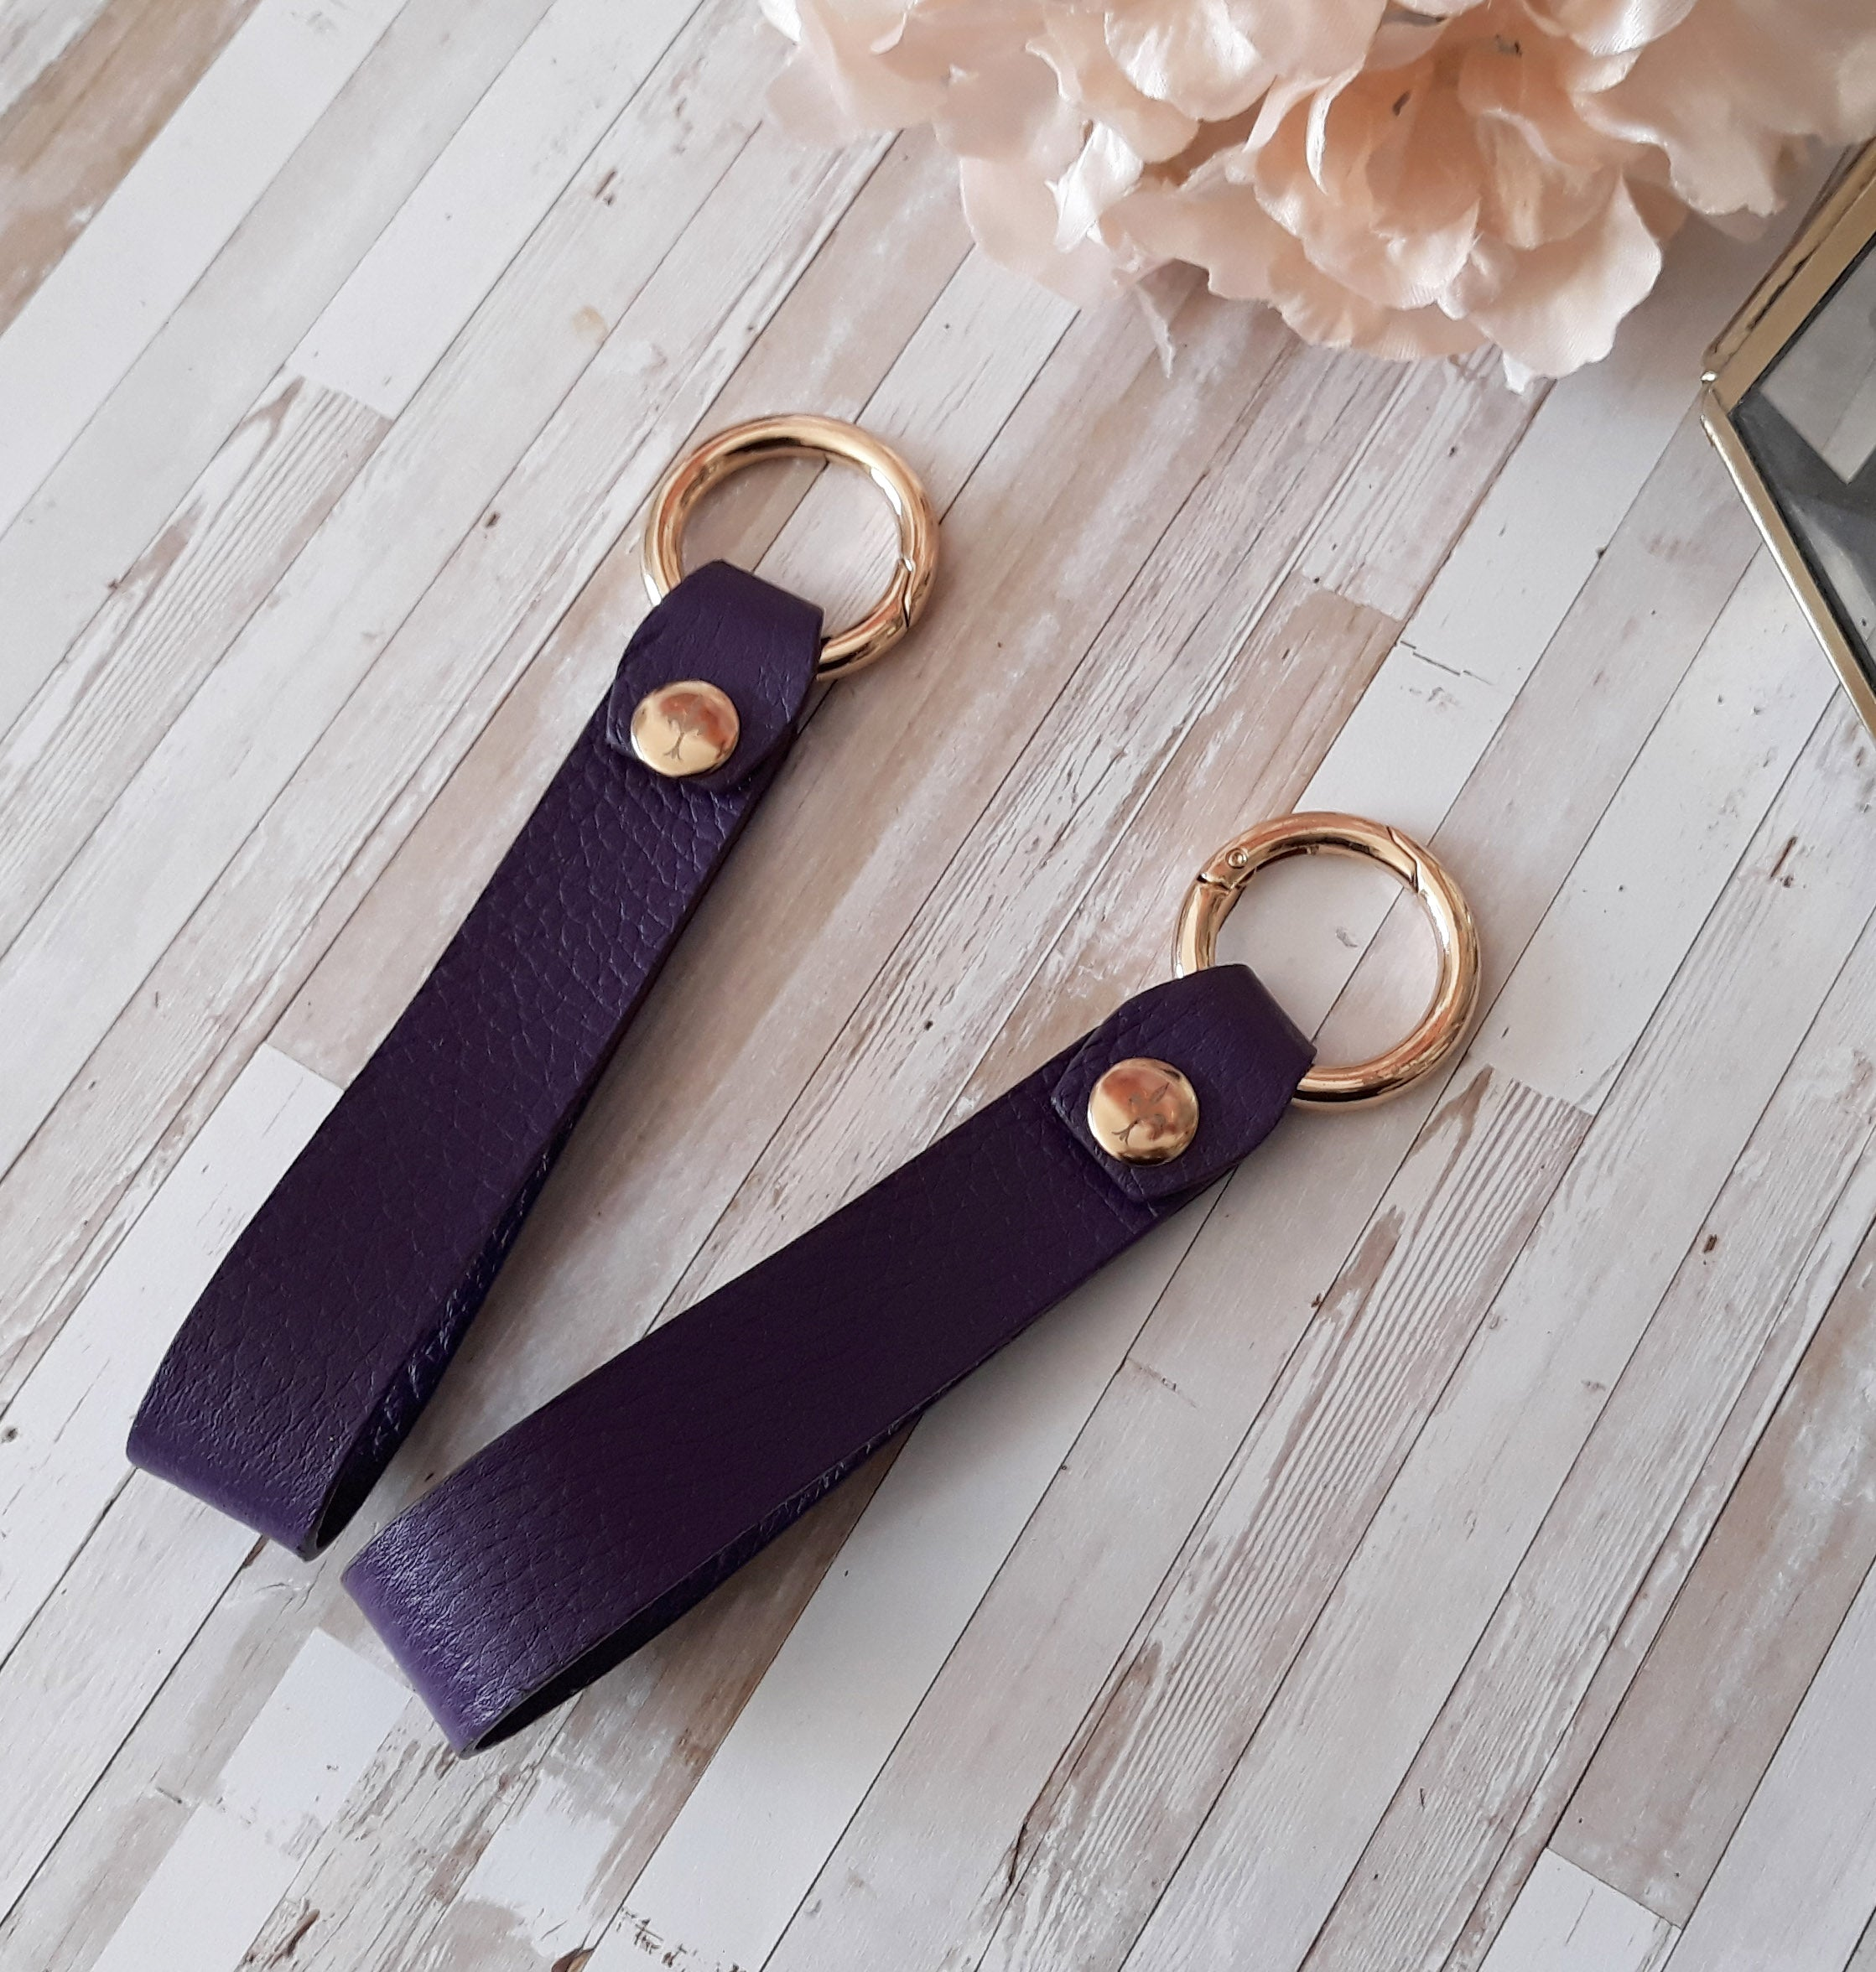 Plum Leather key chain